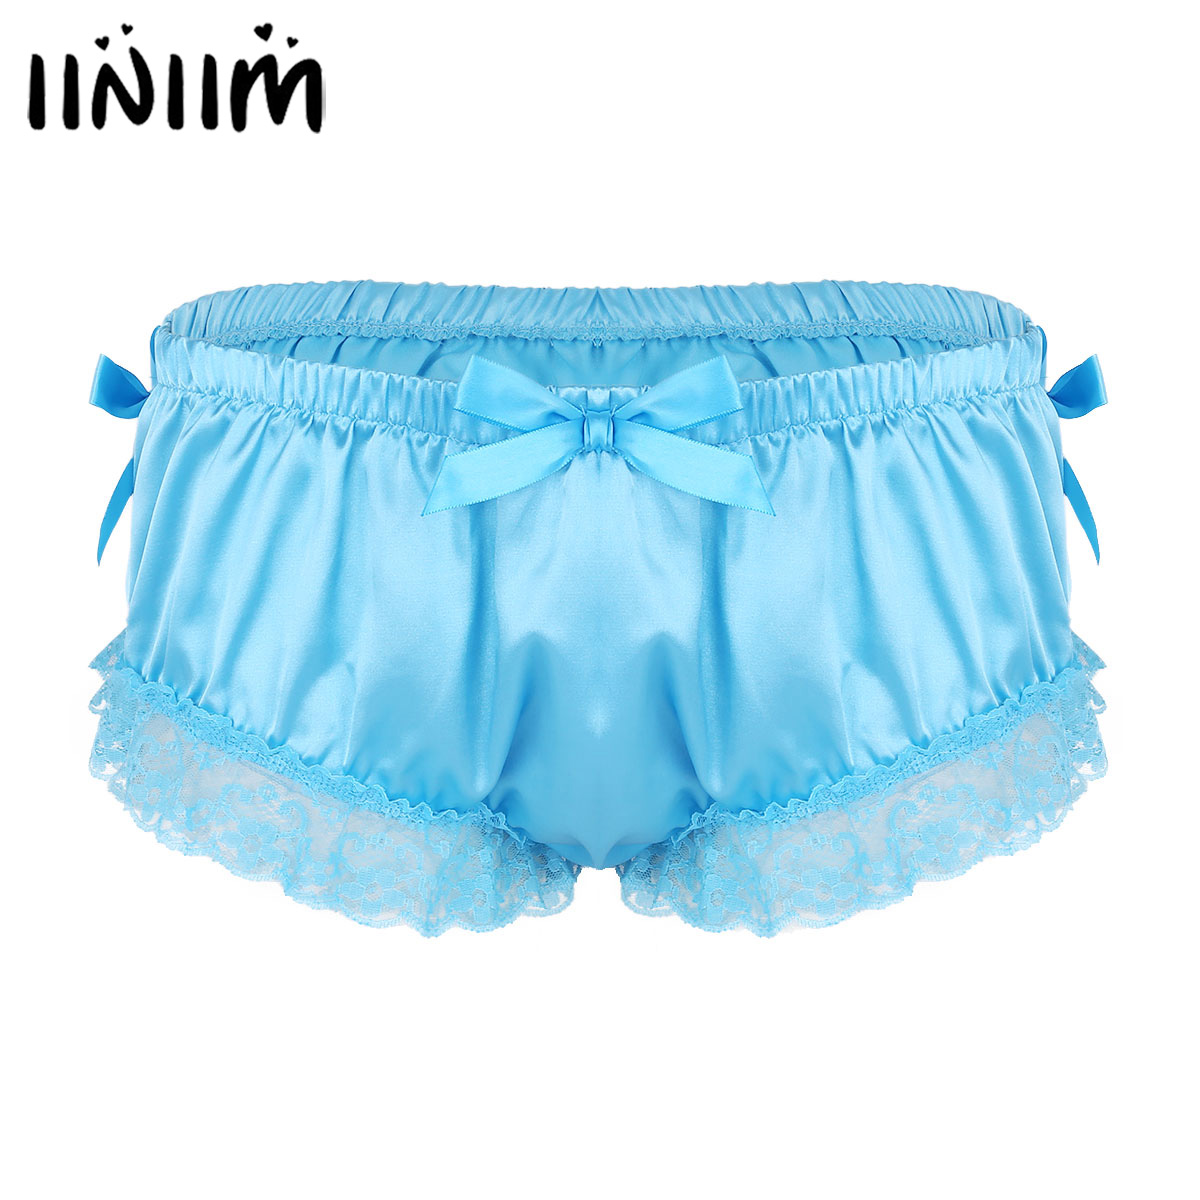 fc858367ffde Mens Sexy Gay Lingerie Panties Shiny Satin Ruffled Floral Lace Cute Bowknot  Knickers Bedtime Briefs Male